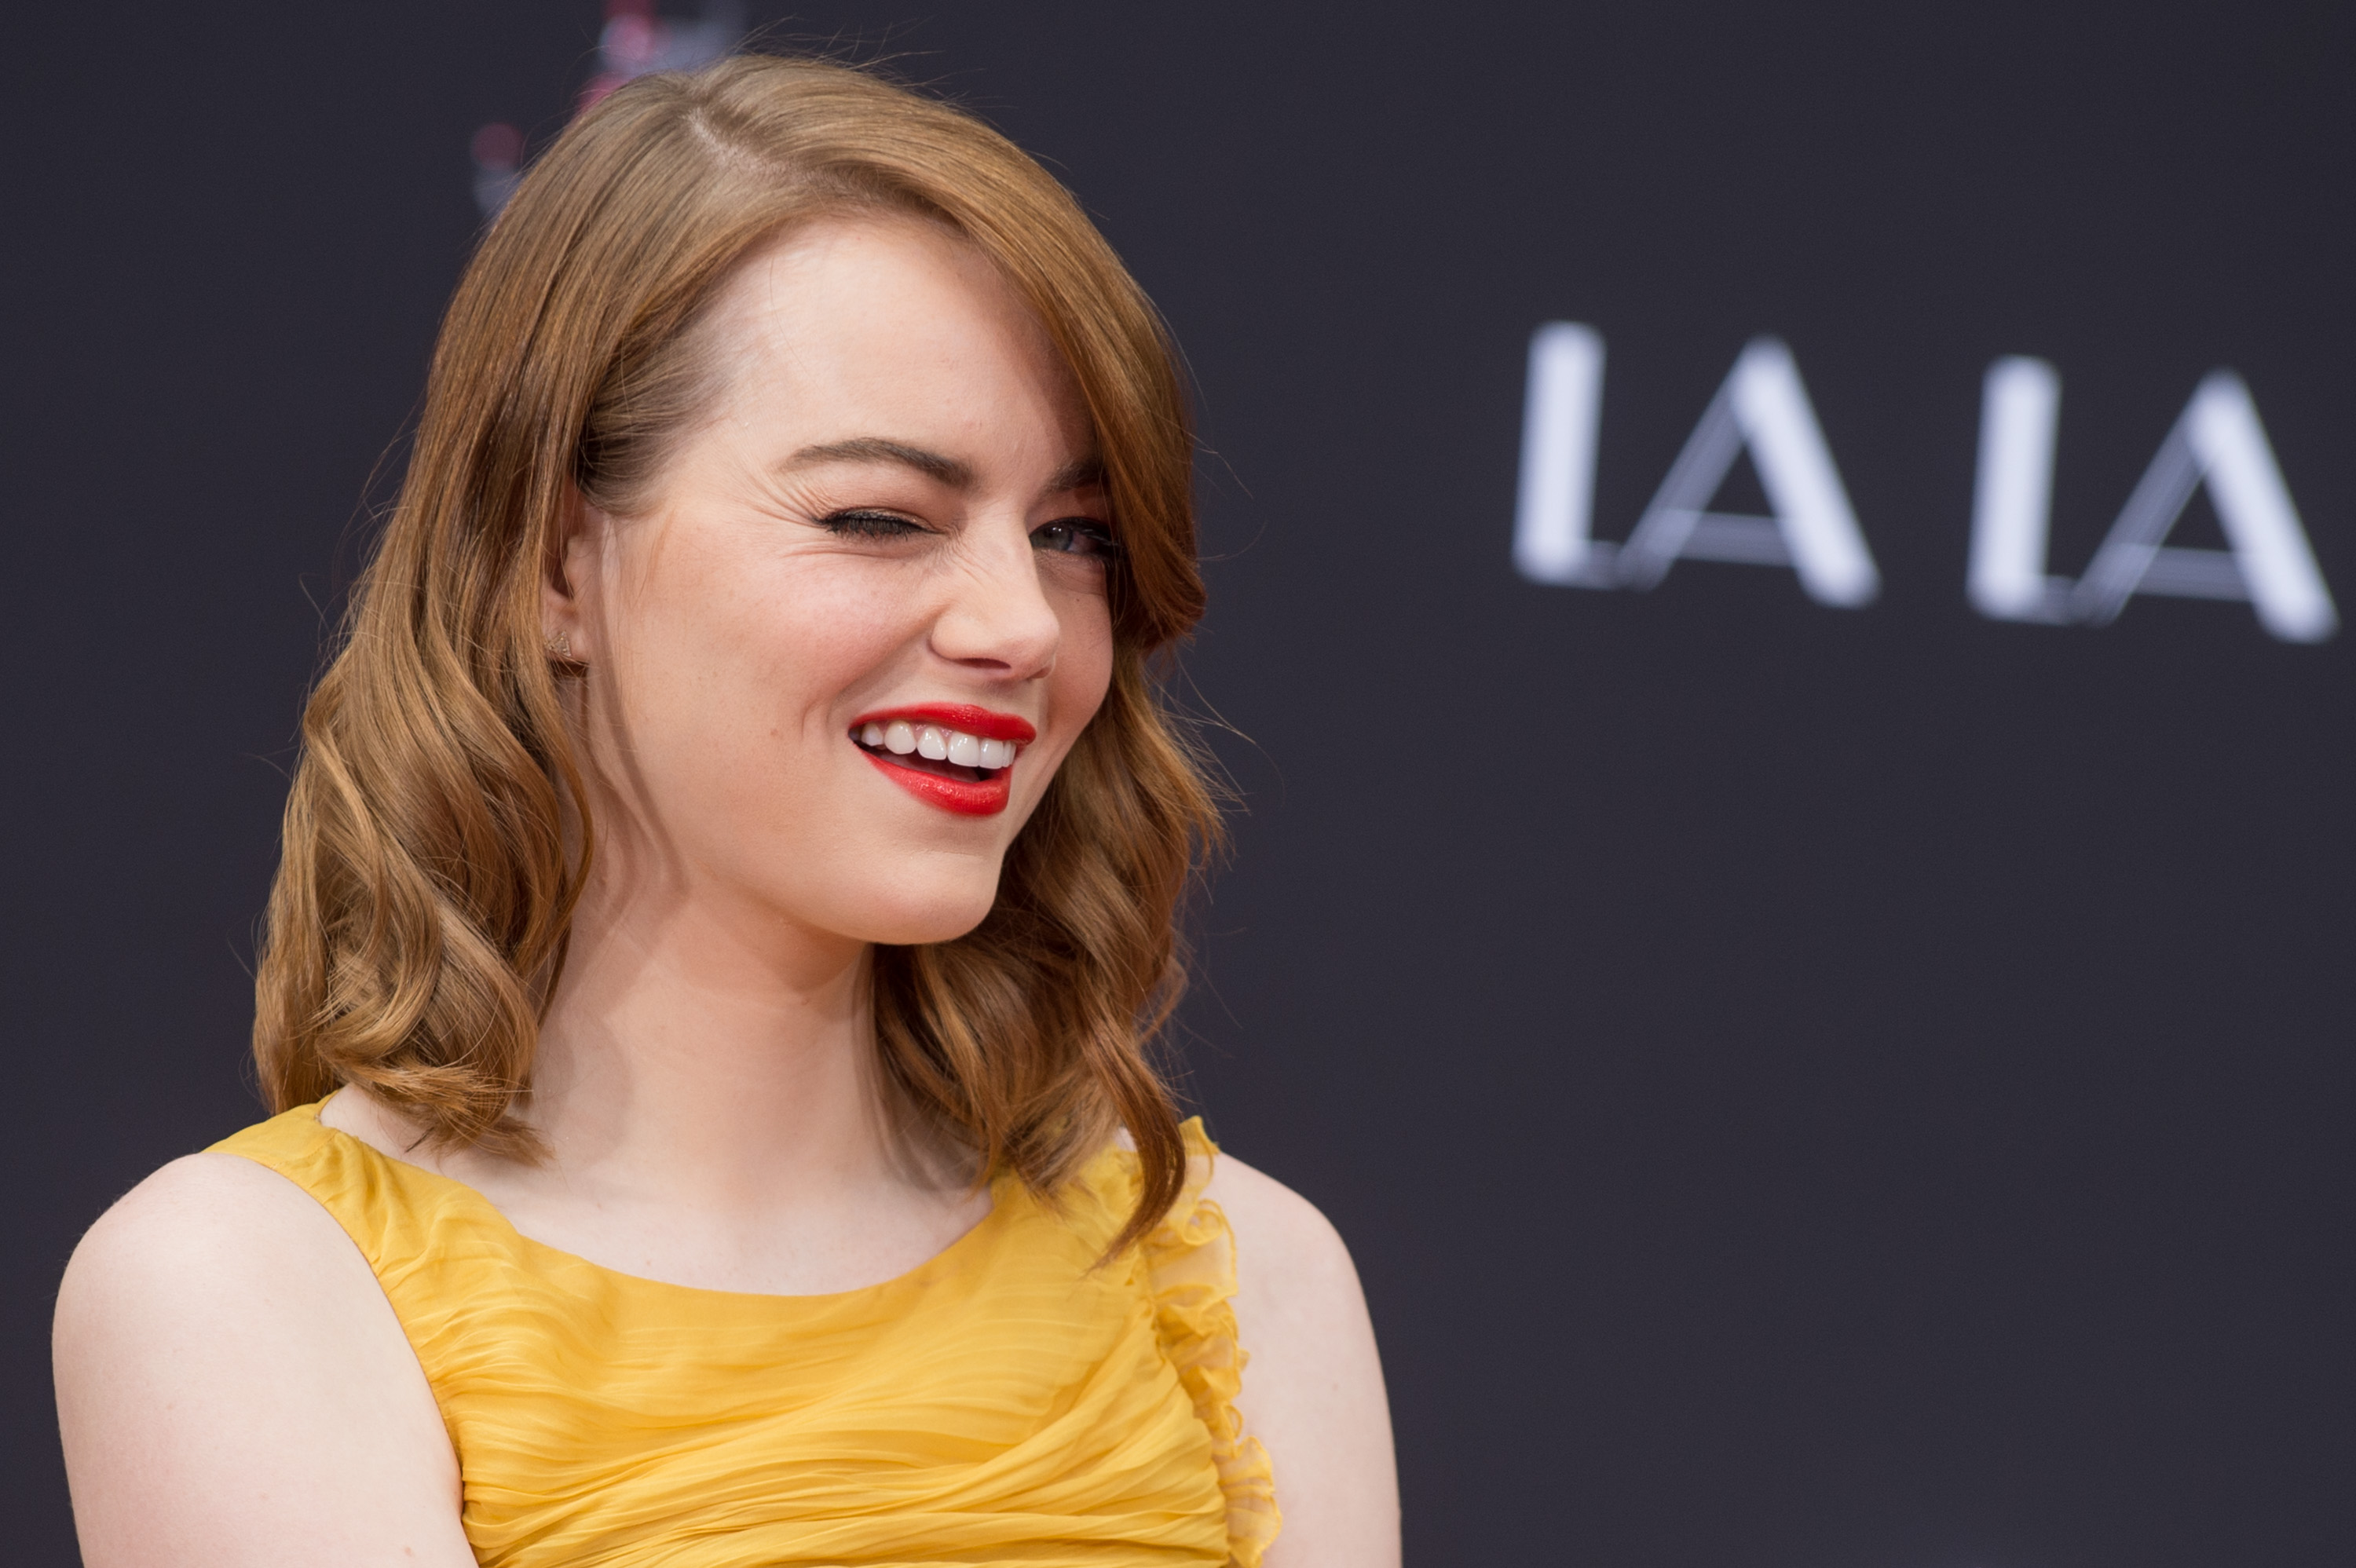 emma-stone-facts-body-measurements